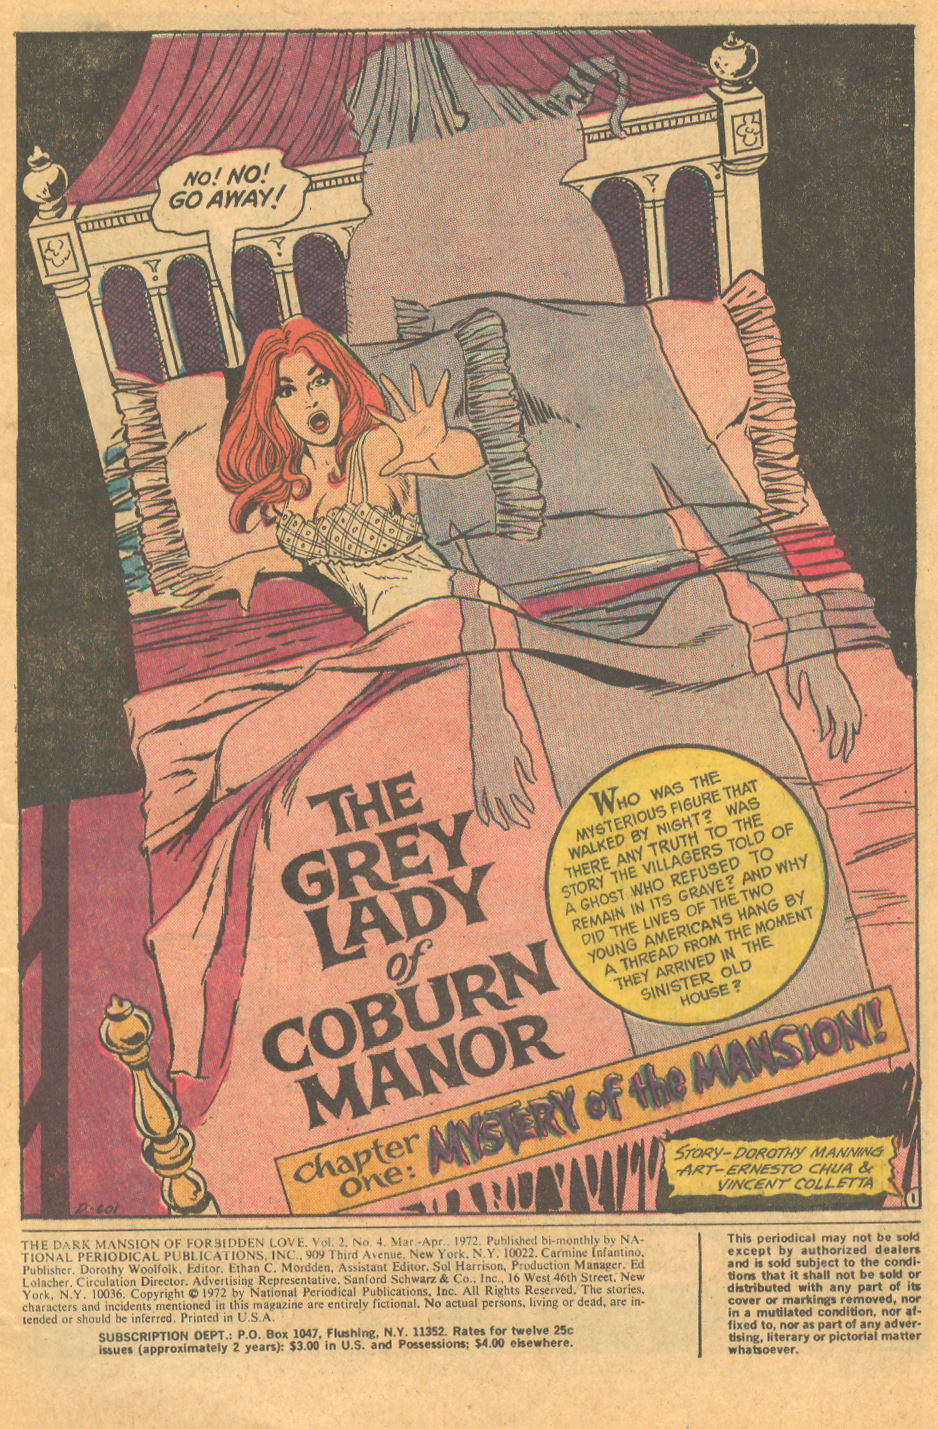 The Dark Mansion of Forbidden Love #4 (March/April 1972) Cover by Nick Cardy